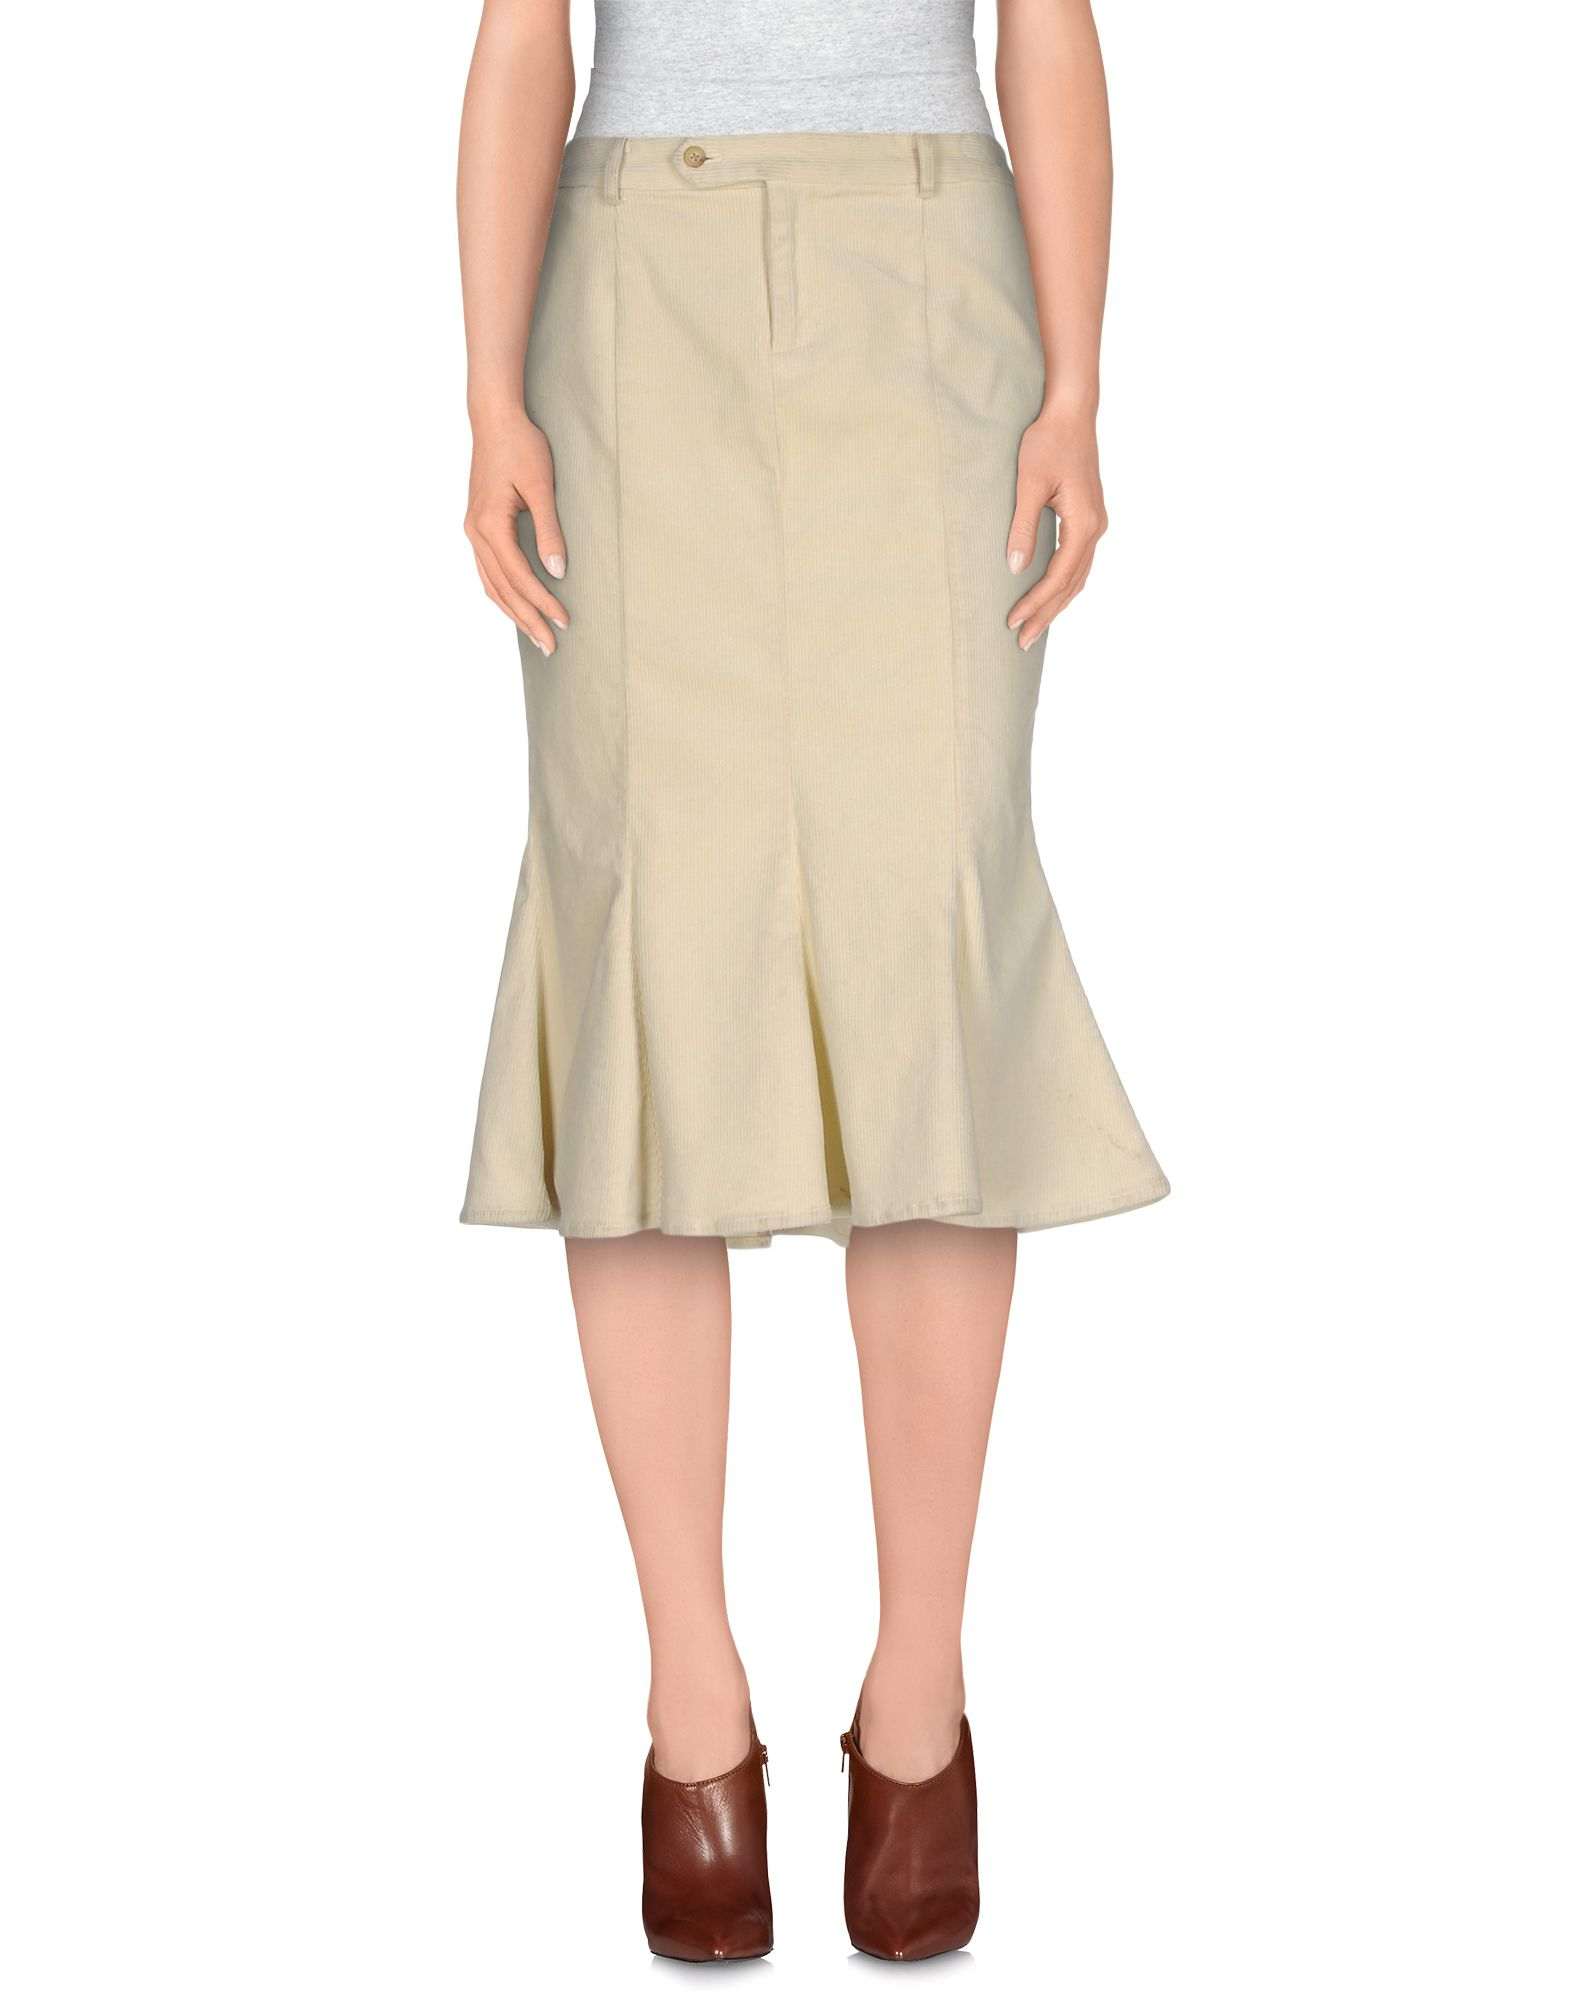 Pink pony 3/4 Length Skirt in Natural